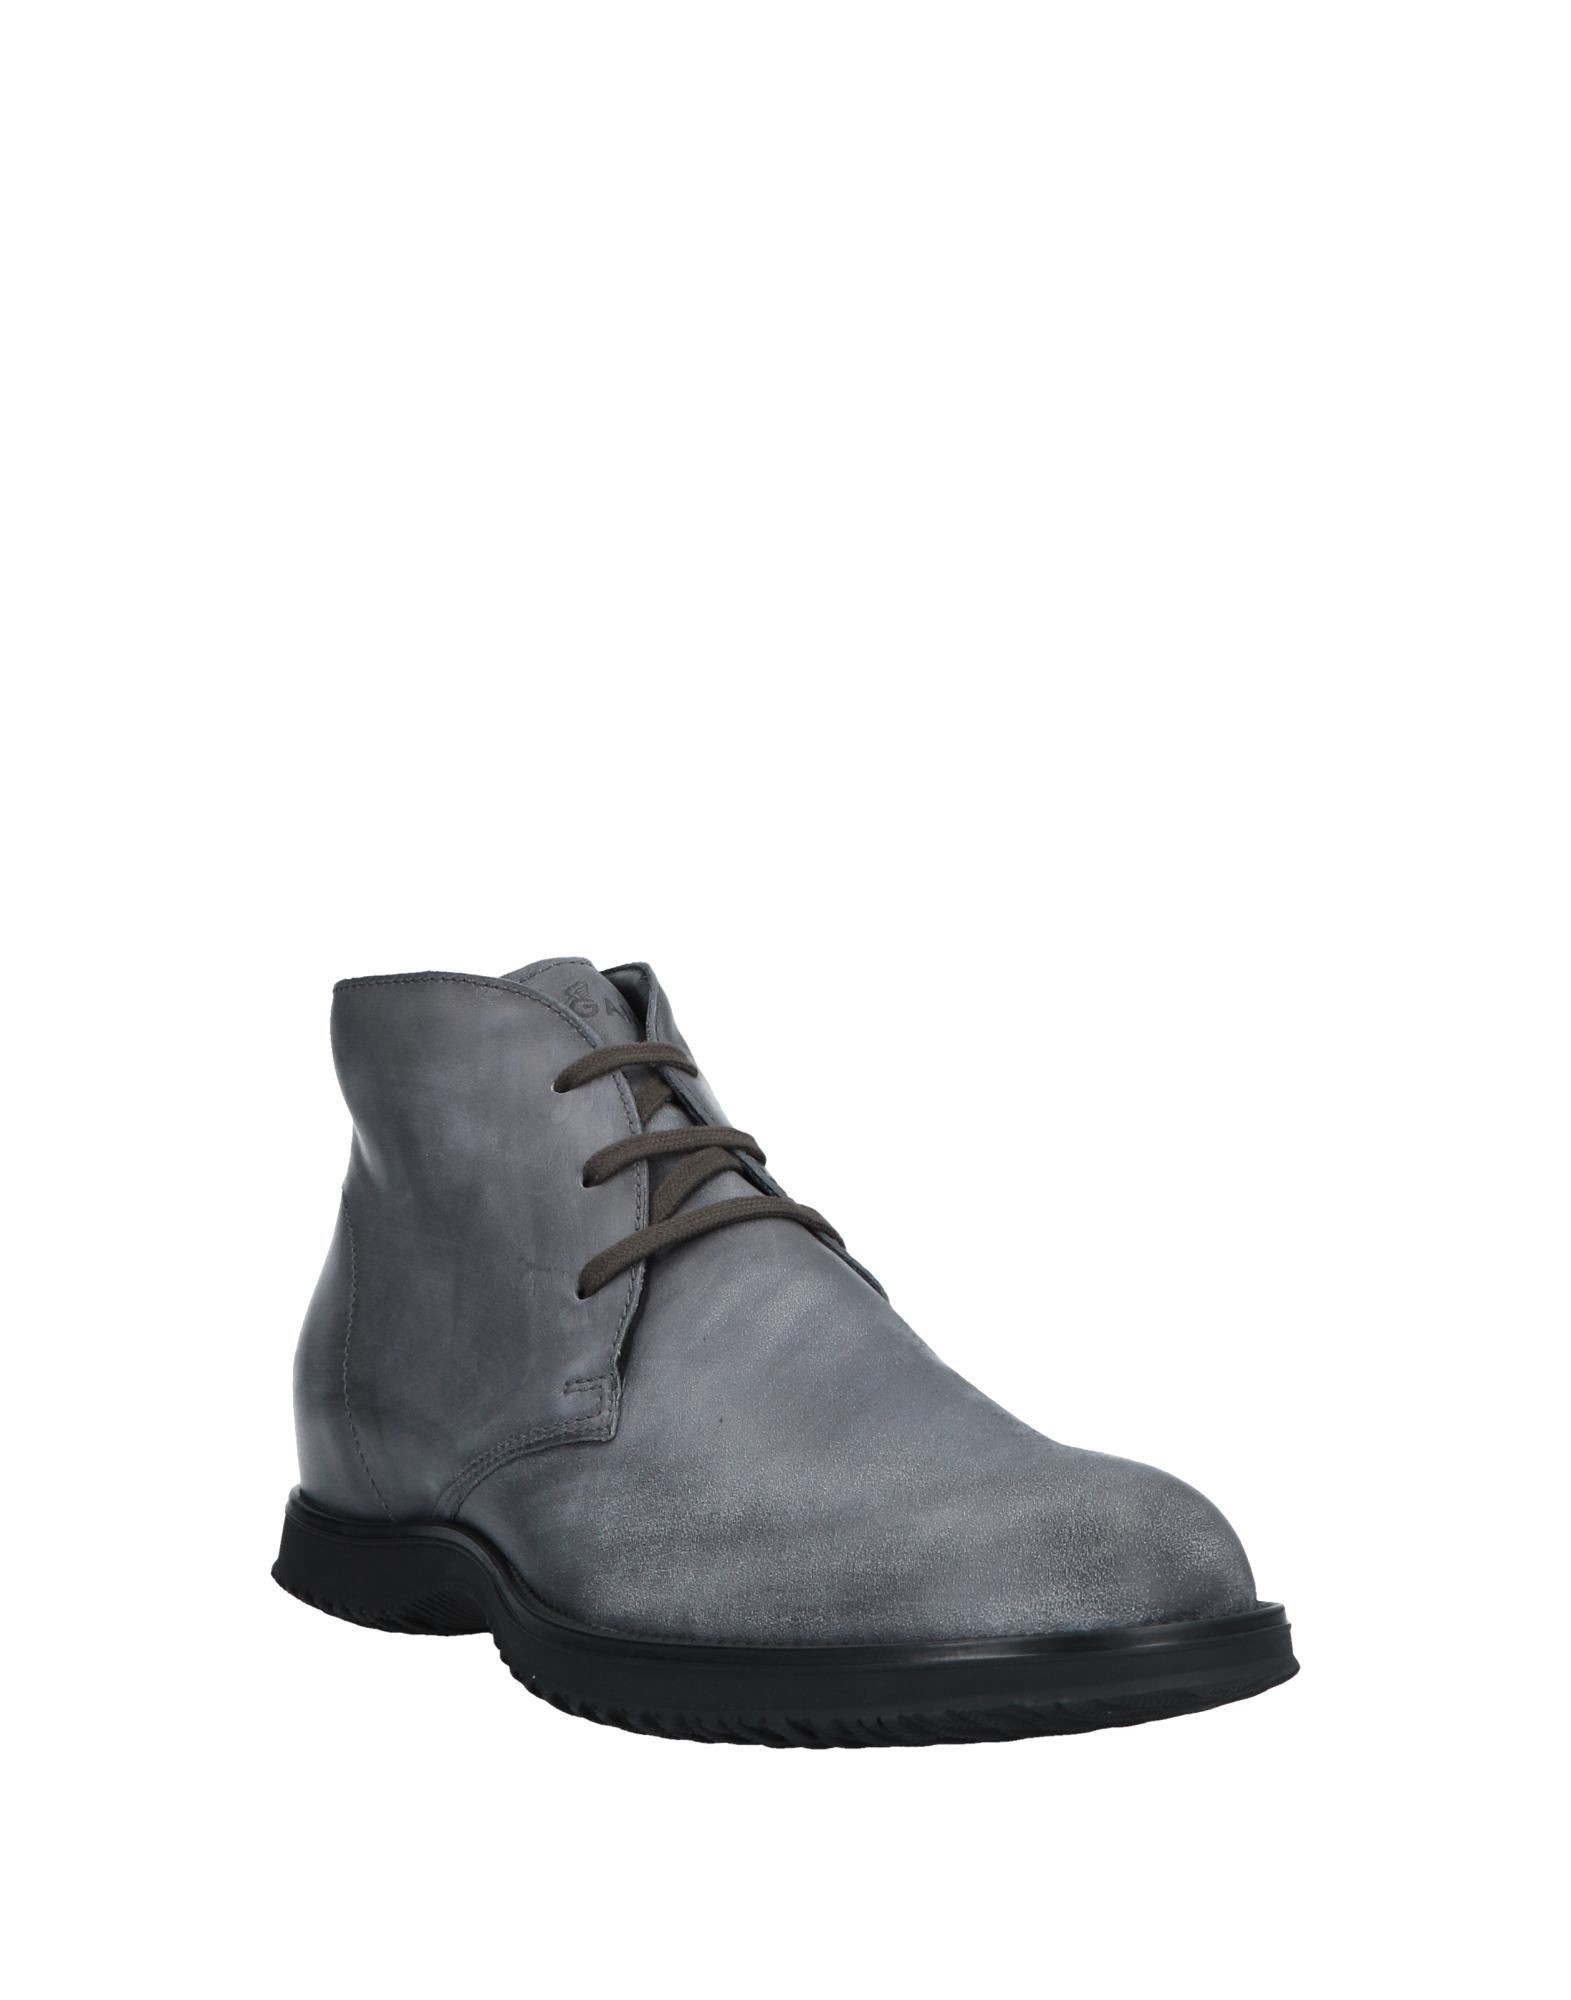 Hogan Grey Leather Lace Up Ankle Boots